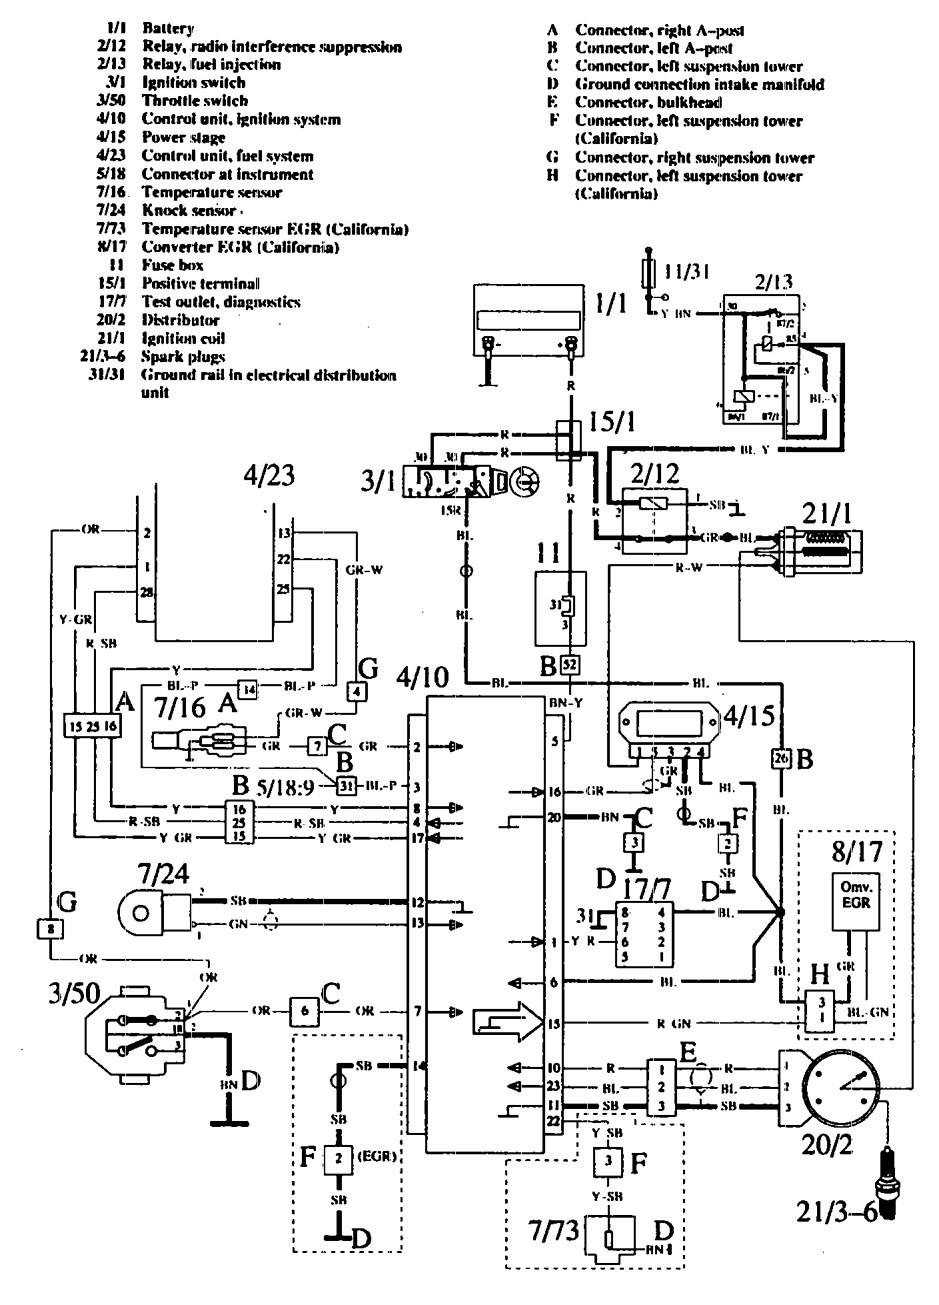 Volvo 740 Ignition Wiring Diagram. Volvo. Auto Fuse Box